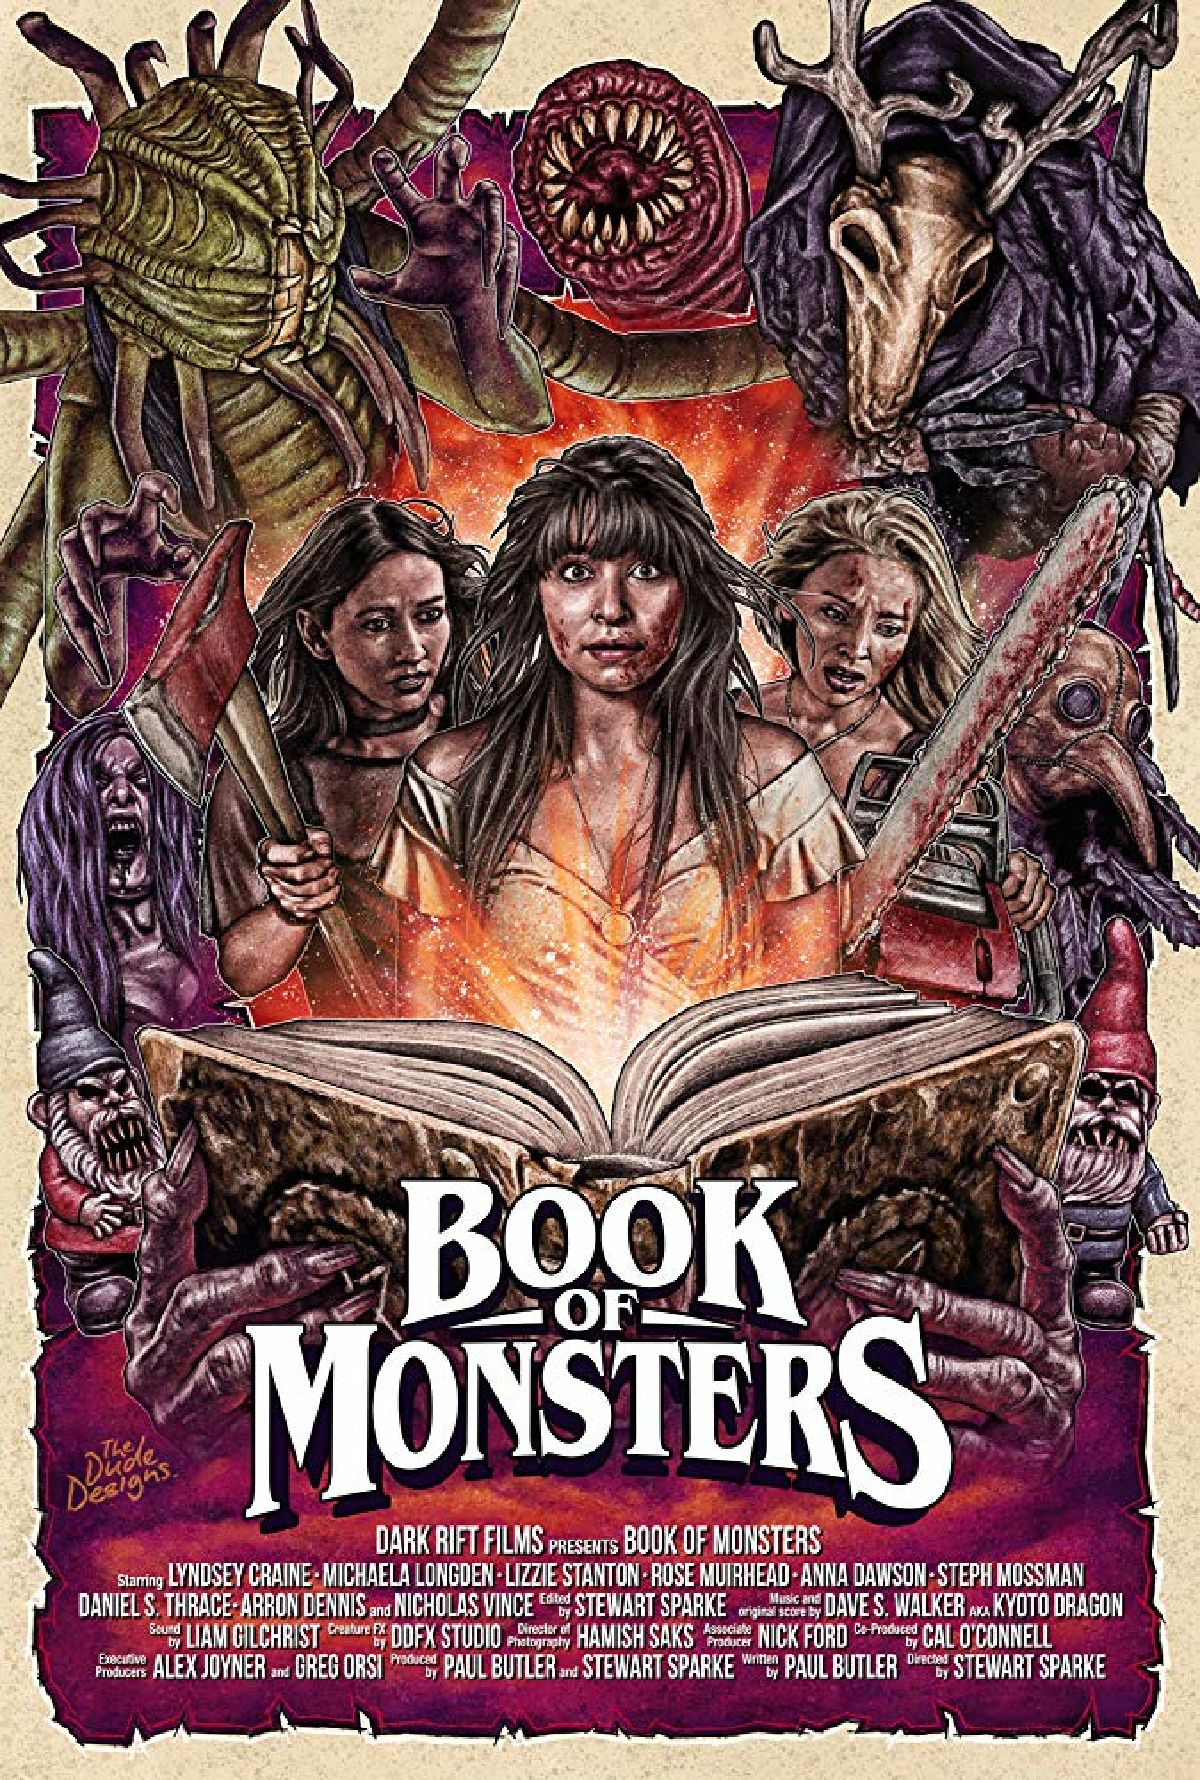 'Book of Monsters' movie poster